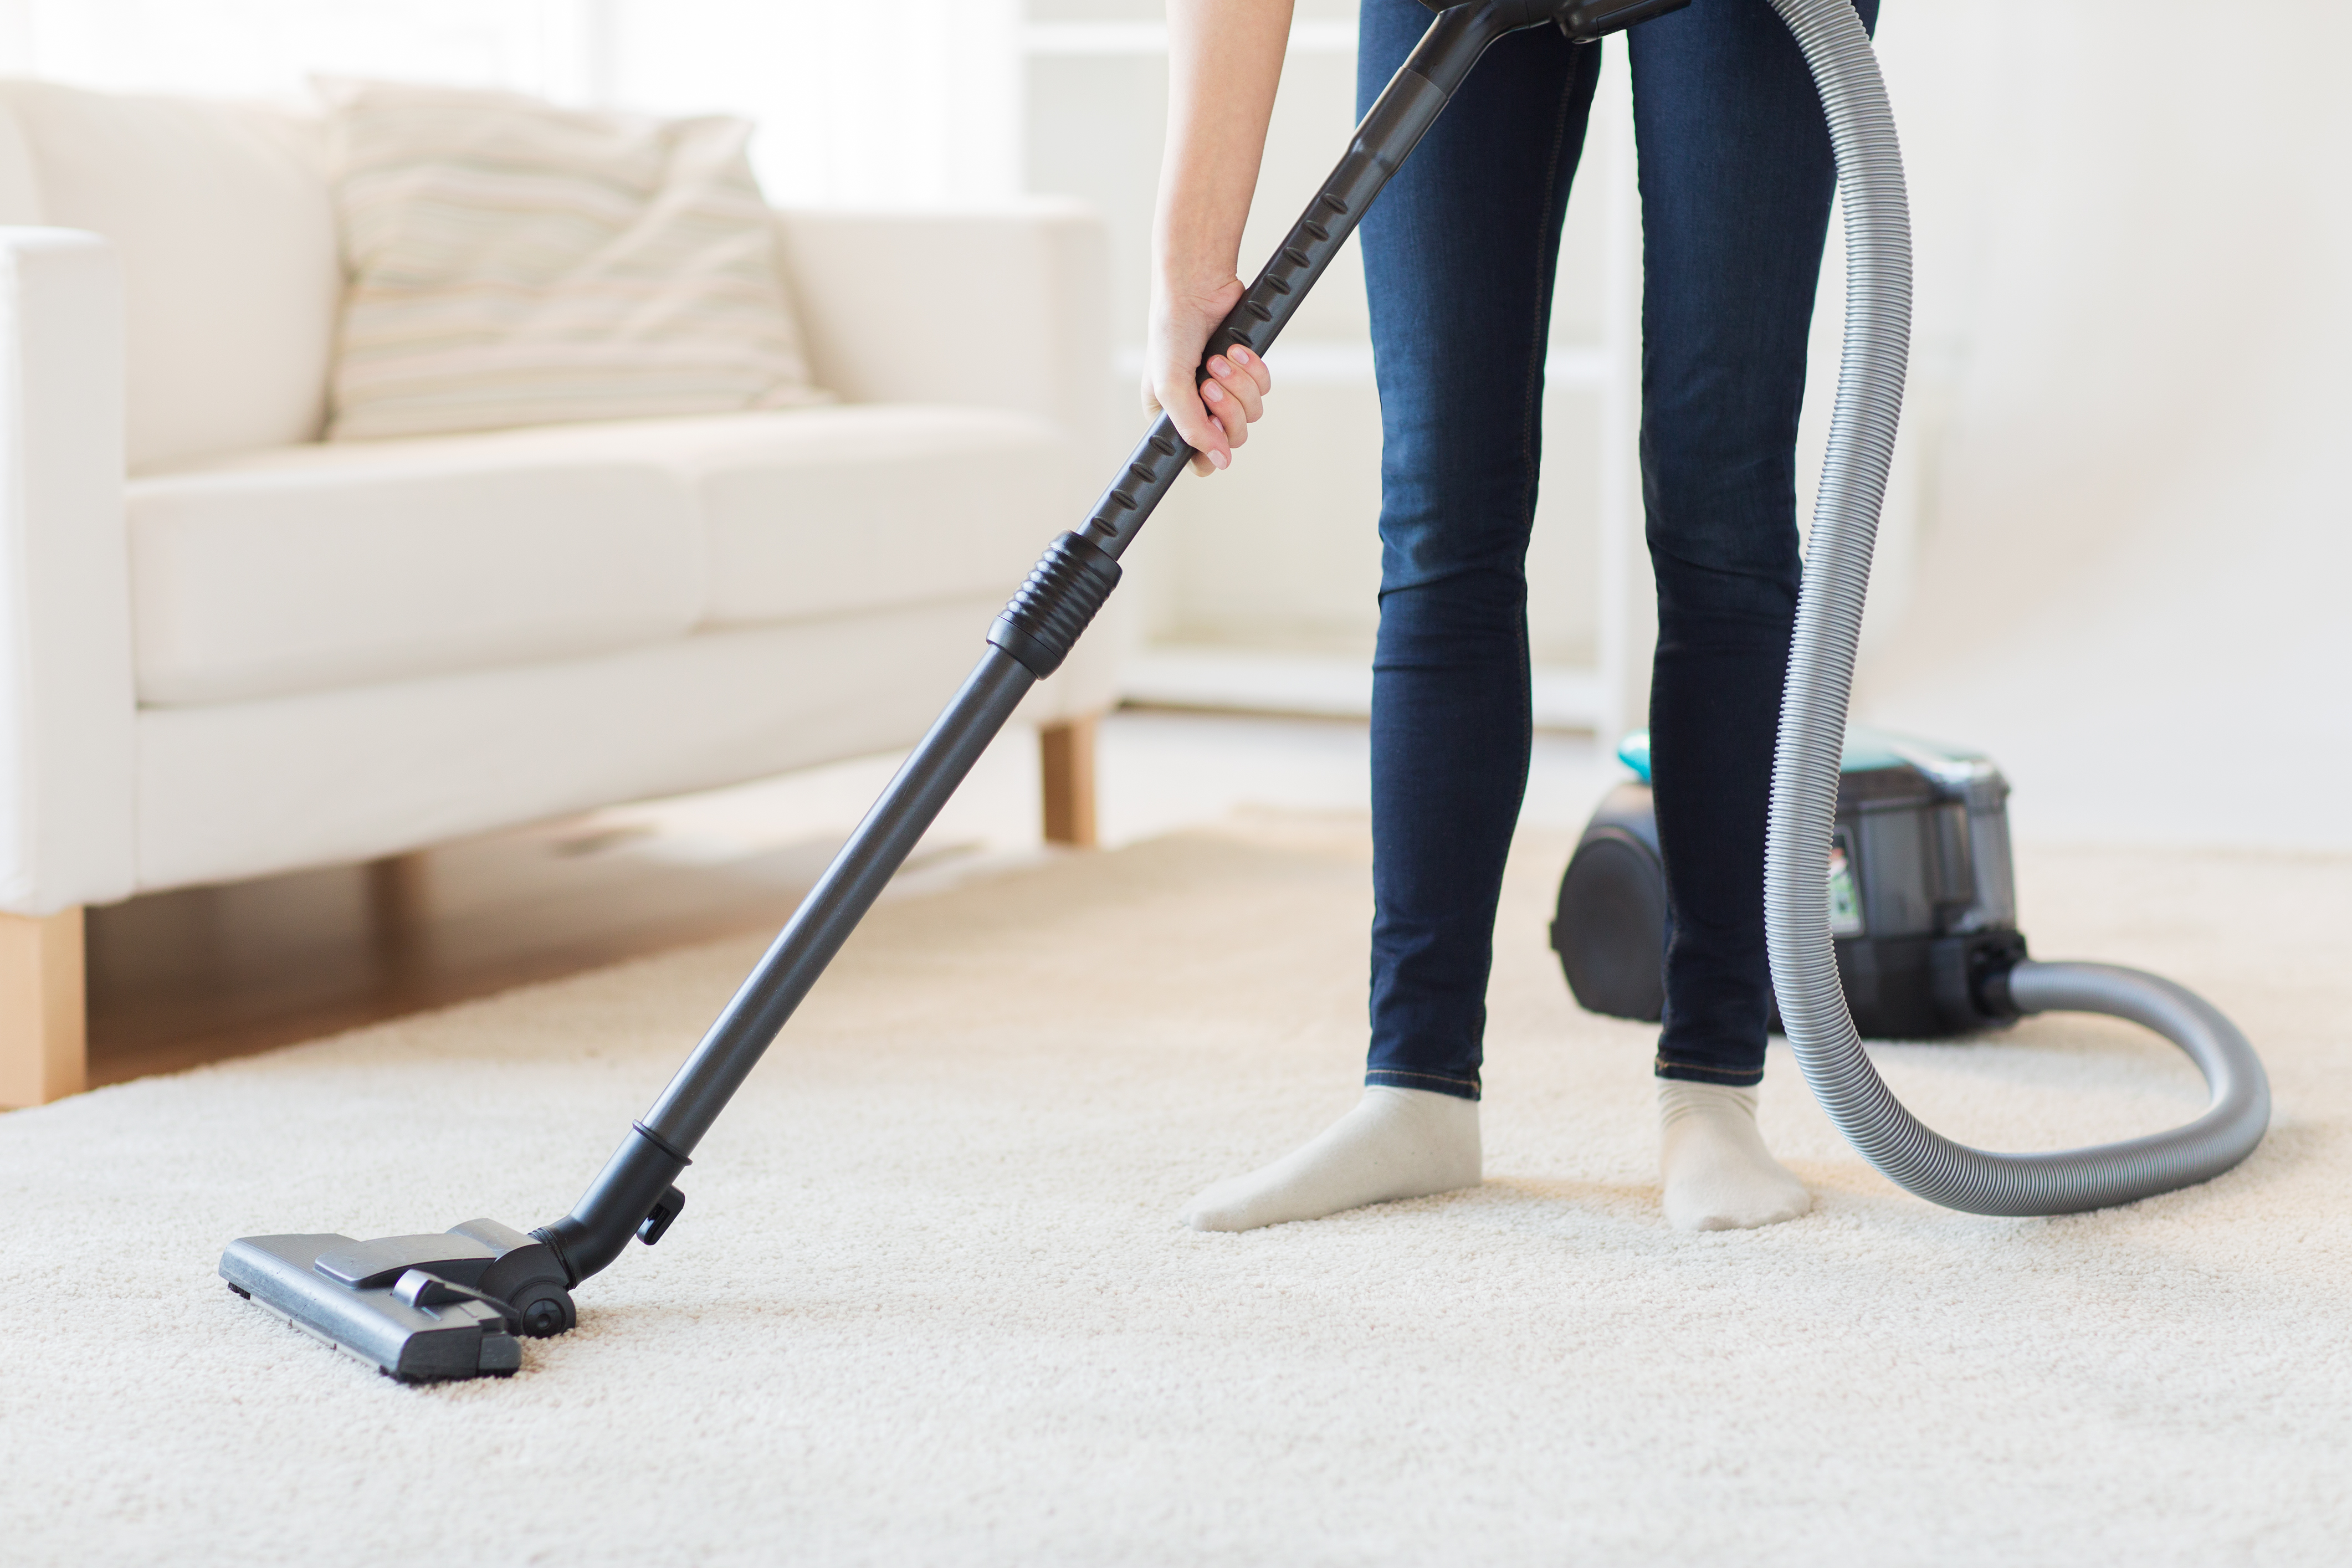 Apartment Cleaning - Sparkling Cleaning Services in Pearland TX